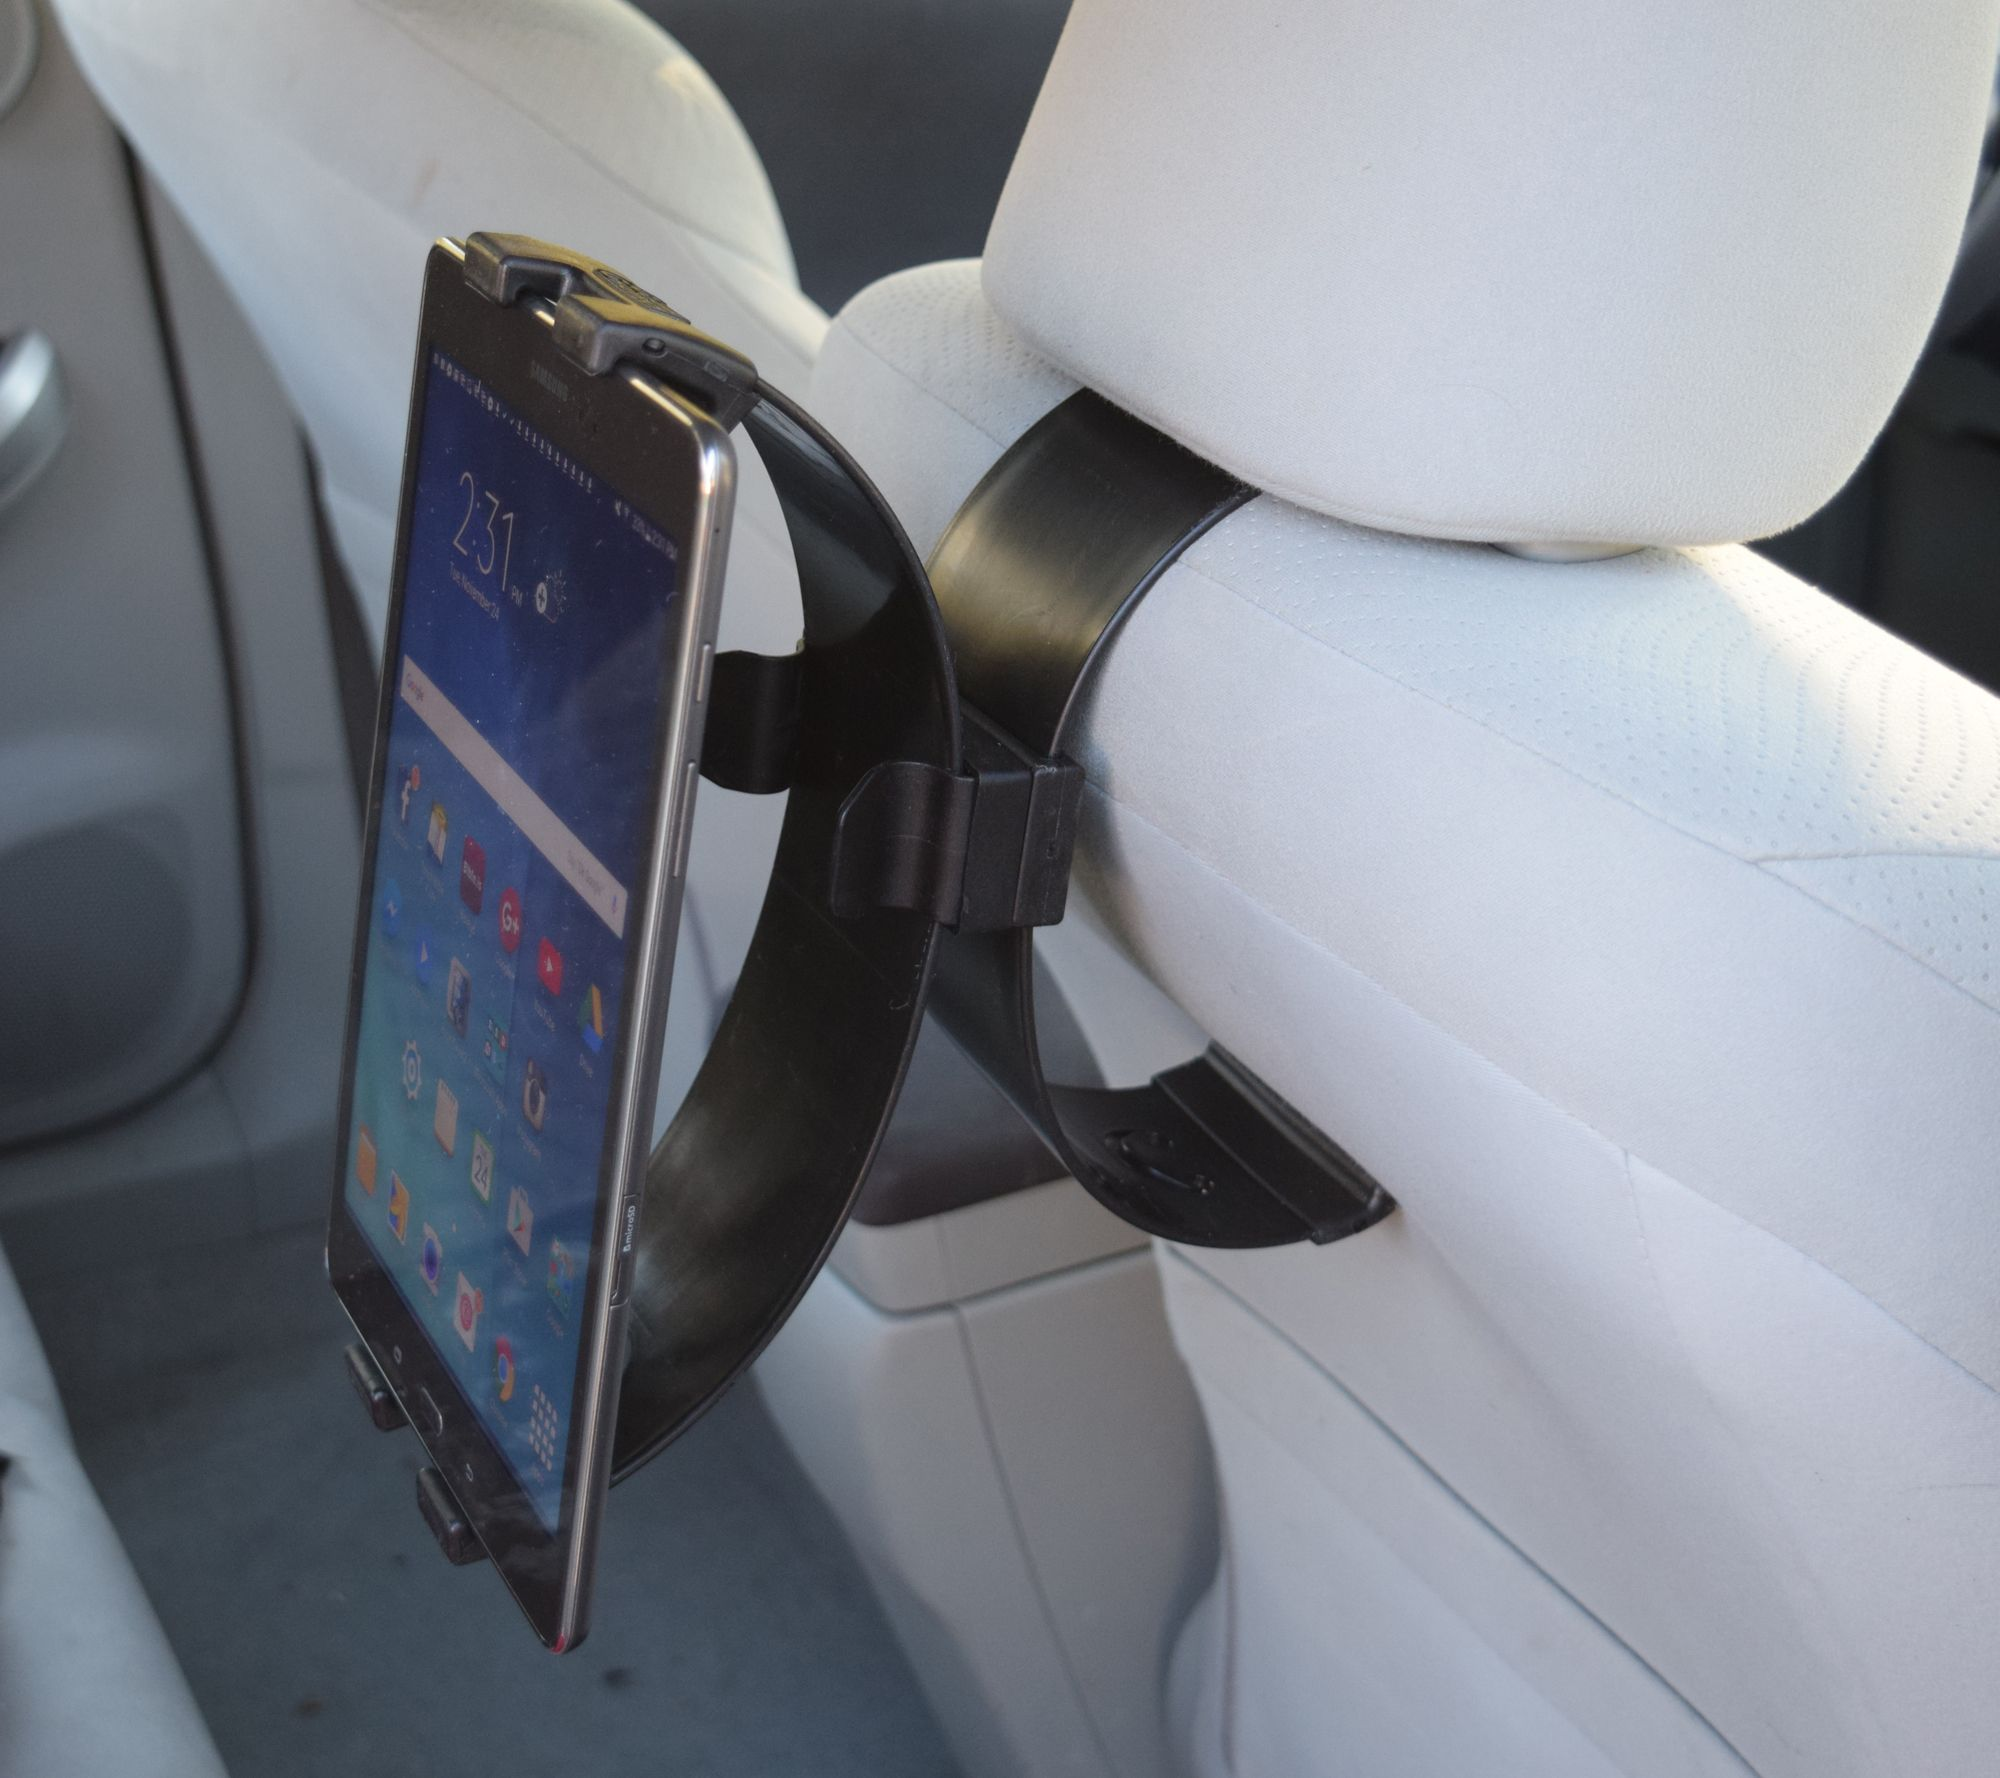 Clamp Champion Pro Portable Mobile Device Holder Page 1